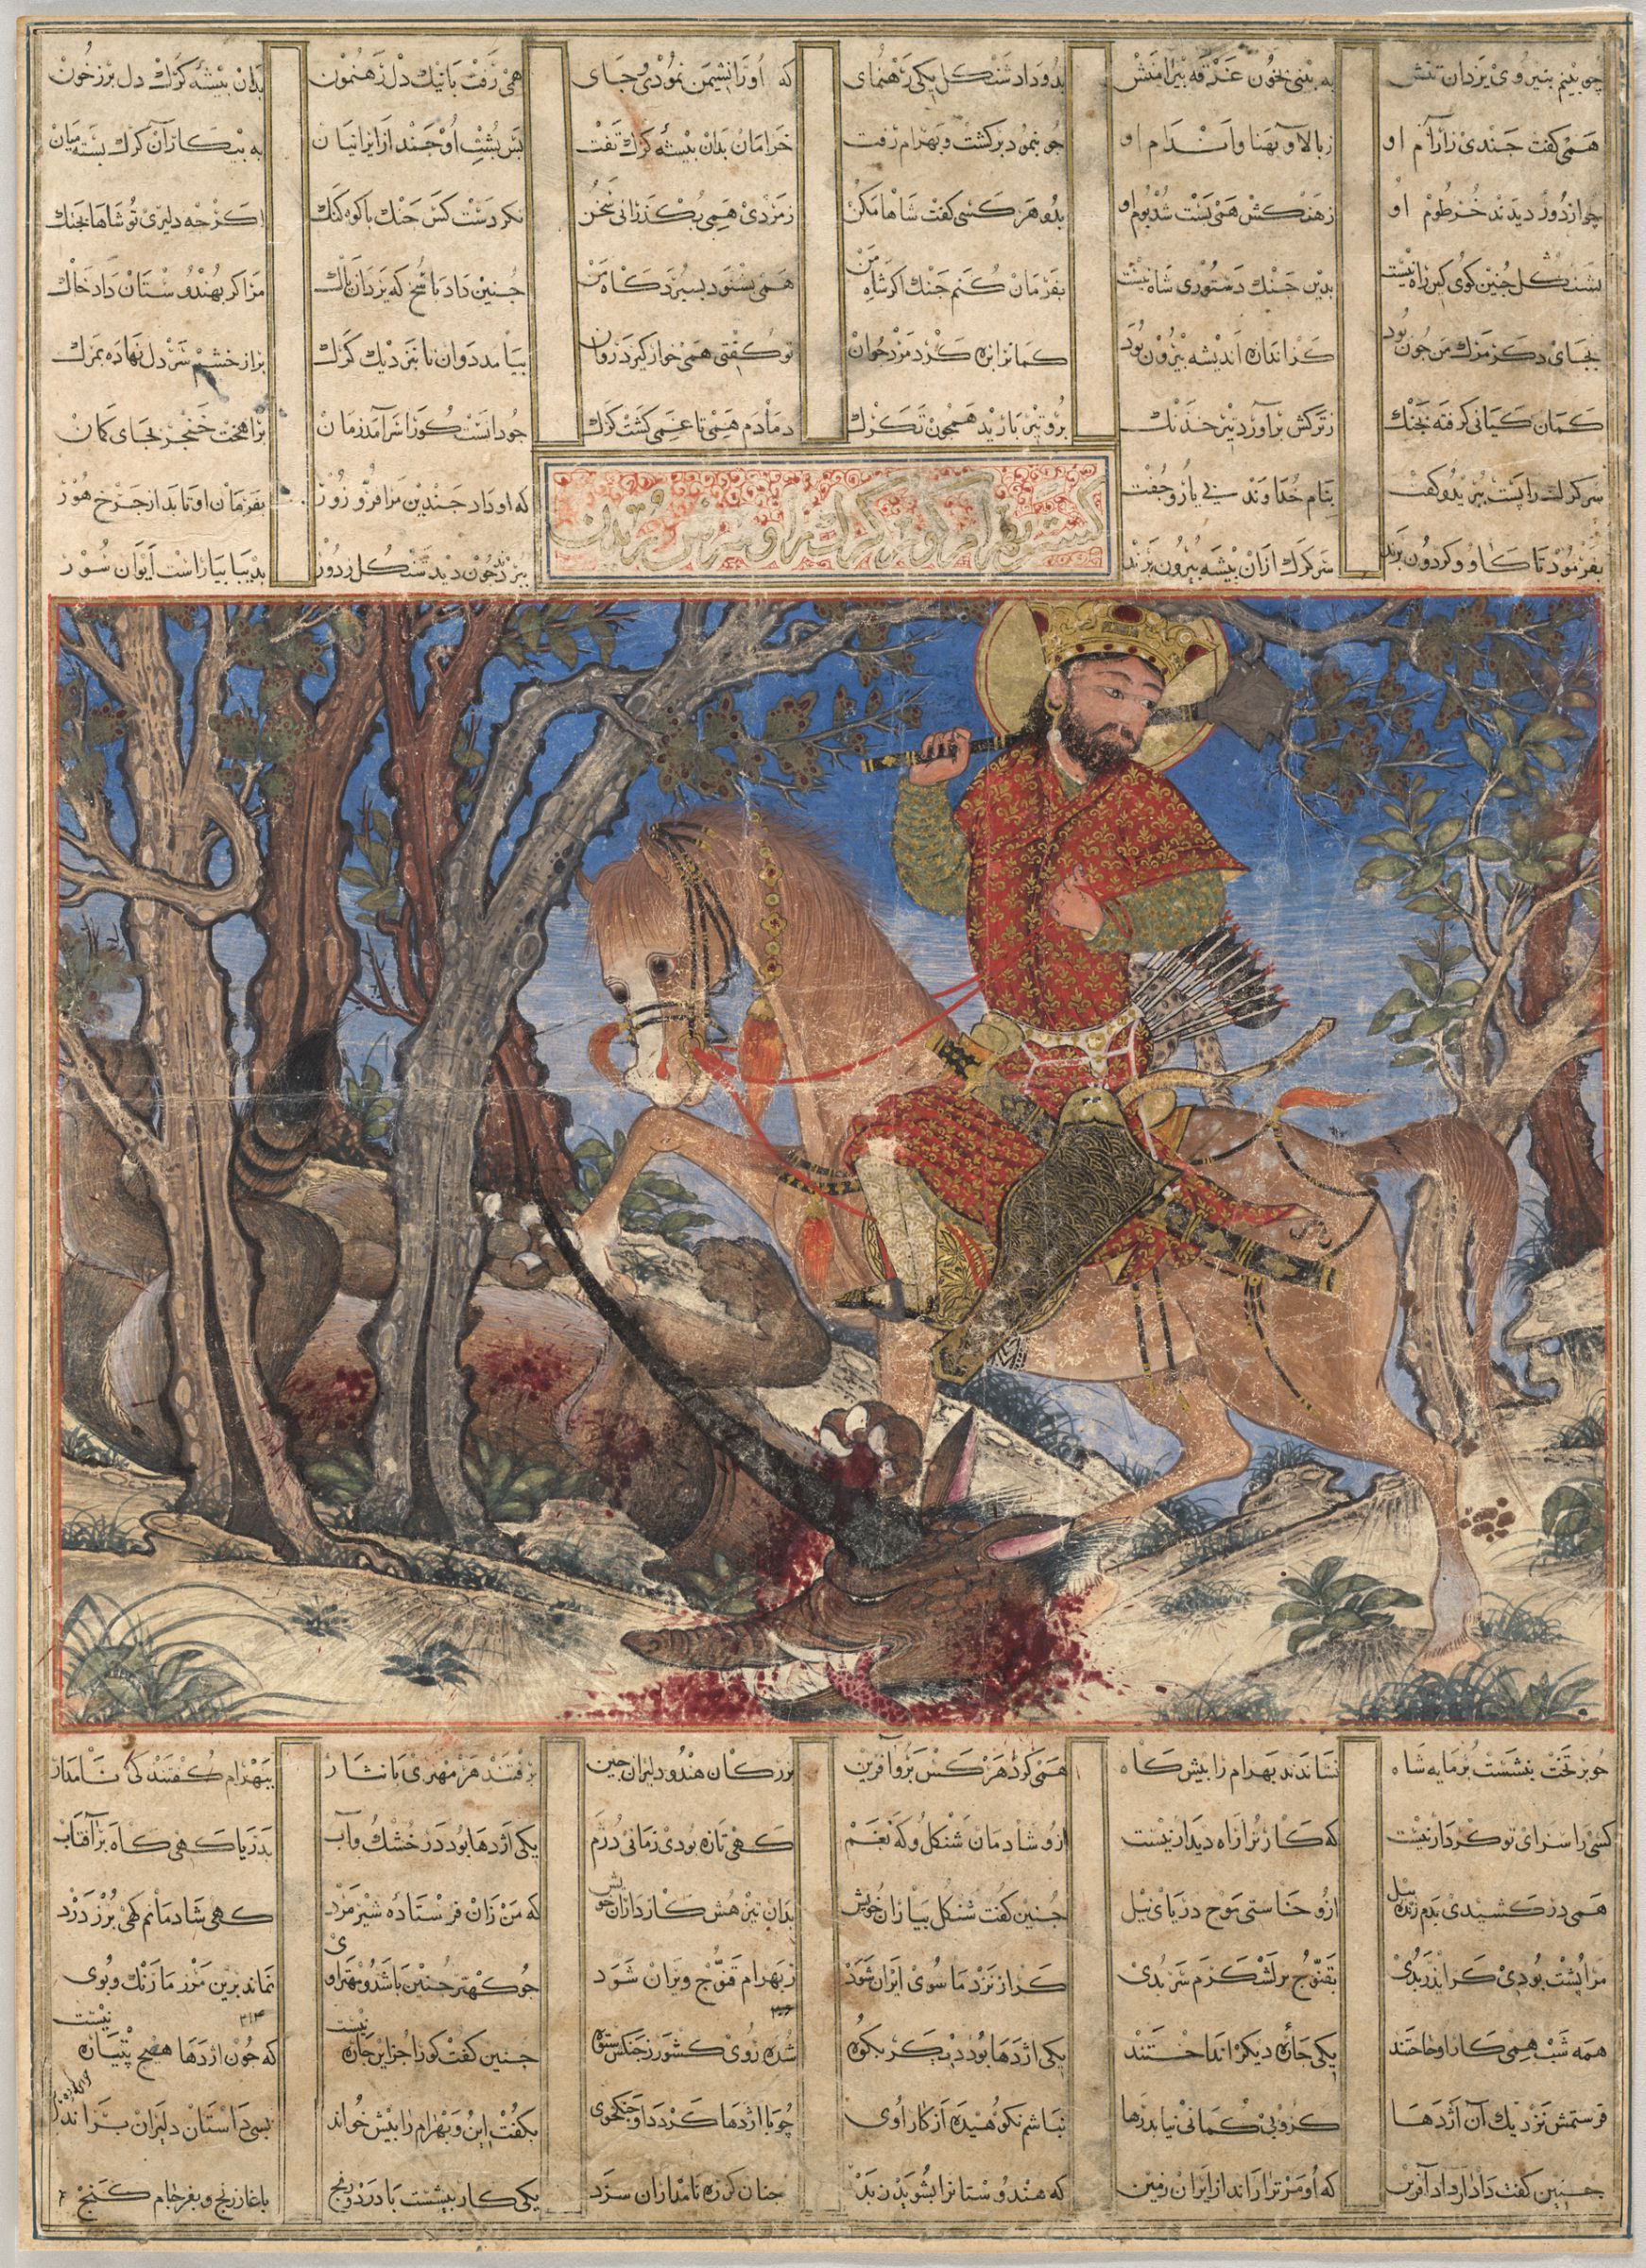 Watercolor art history - From The Harvard Art Museums Collections Bahram Gur Fights The Horned Wolf Painting Verso Text Recto Illustrated Folio From A Manuscript Of The Great